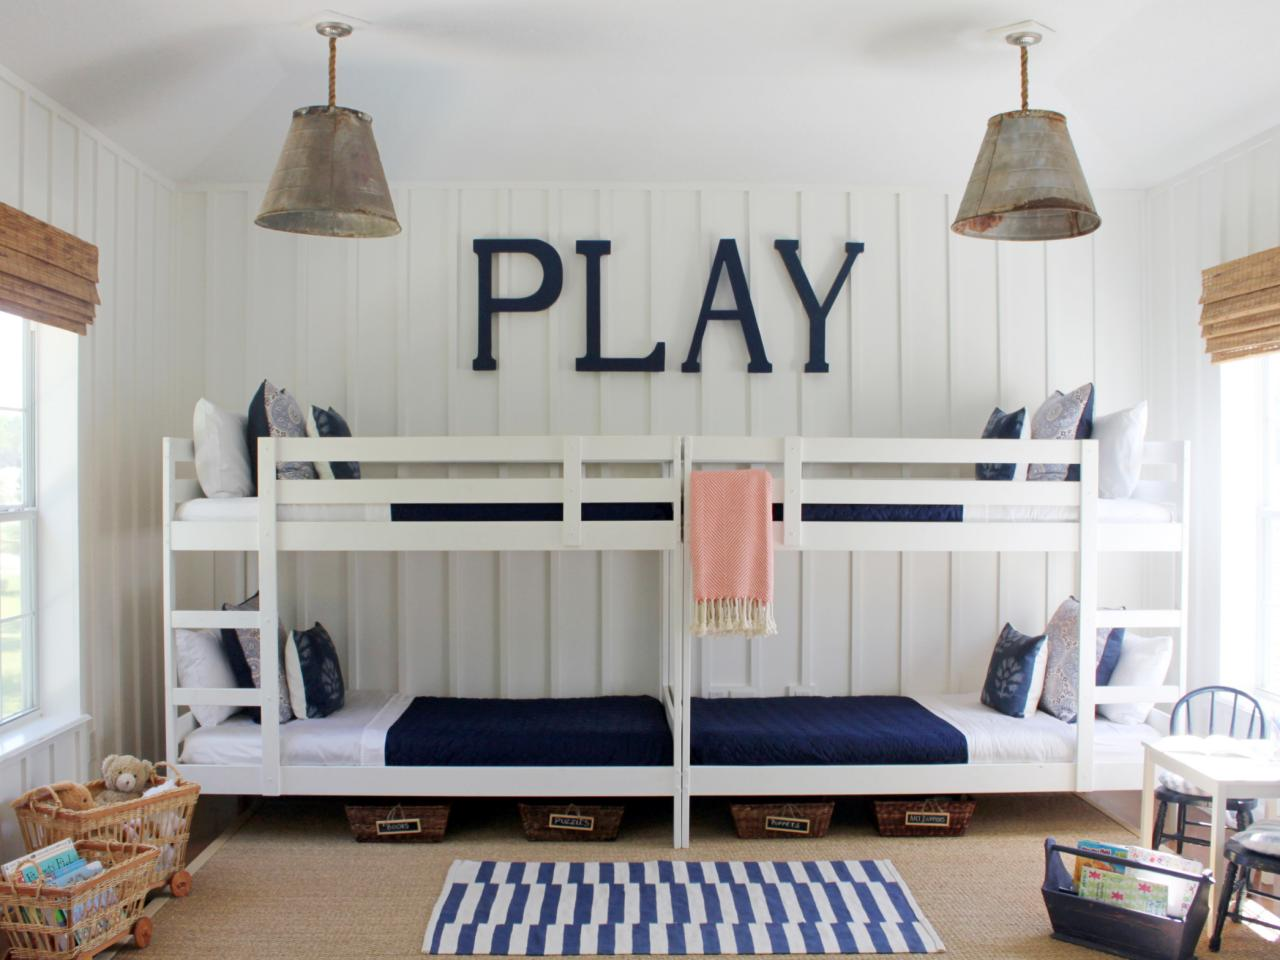 fetching-bed-cheap-kids-room-interior-design-decorating-ideas-with-white-wood-double-bunk-bed-along-white-bedding-and-dark-blue-blanket-also-twin-gray-pendant-lamp-and-white-wall-with-living-room-furn